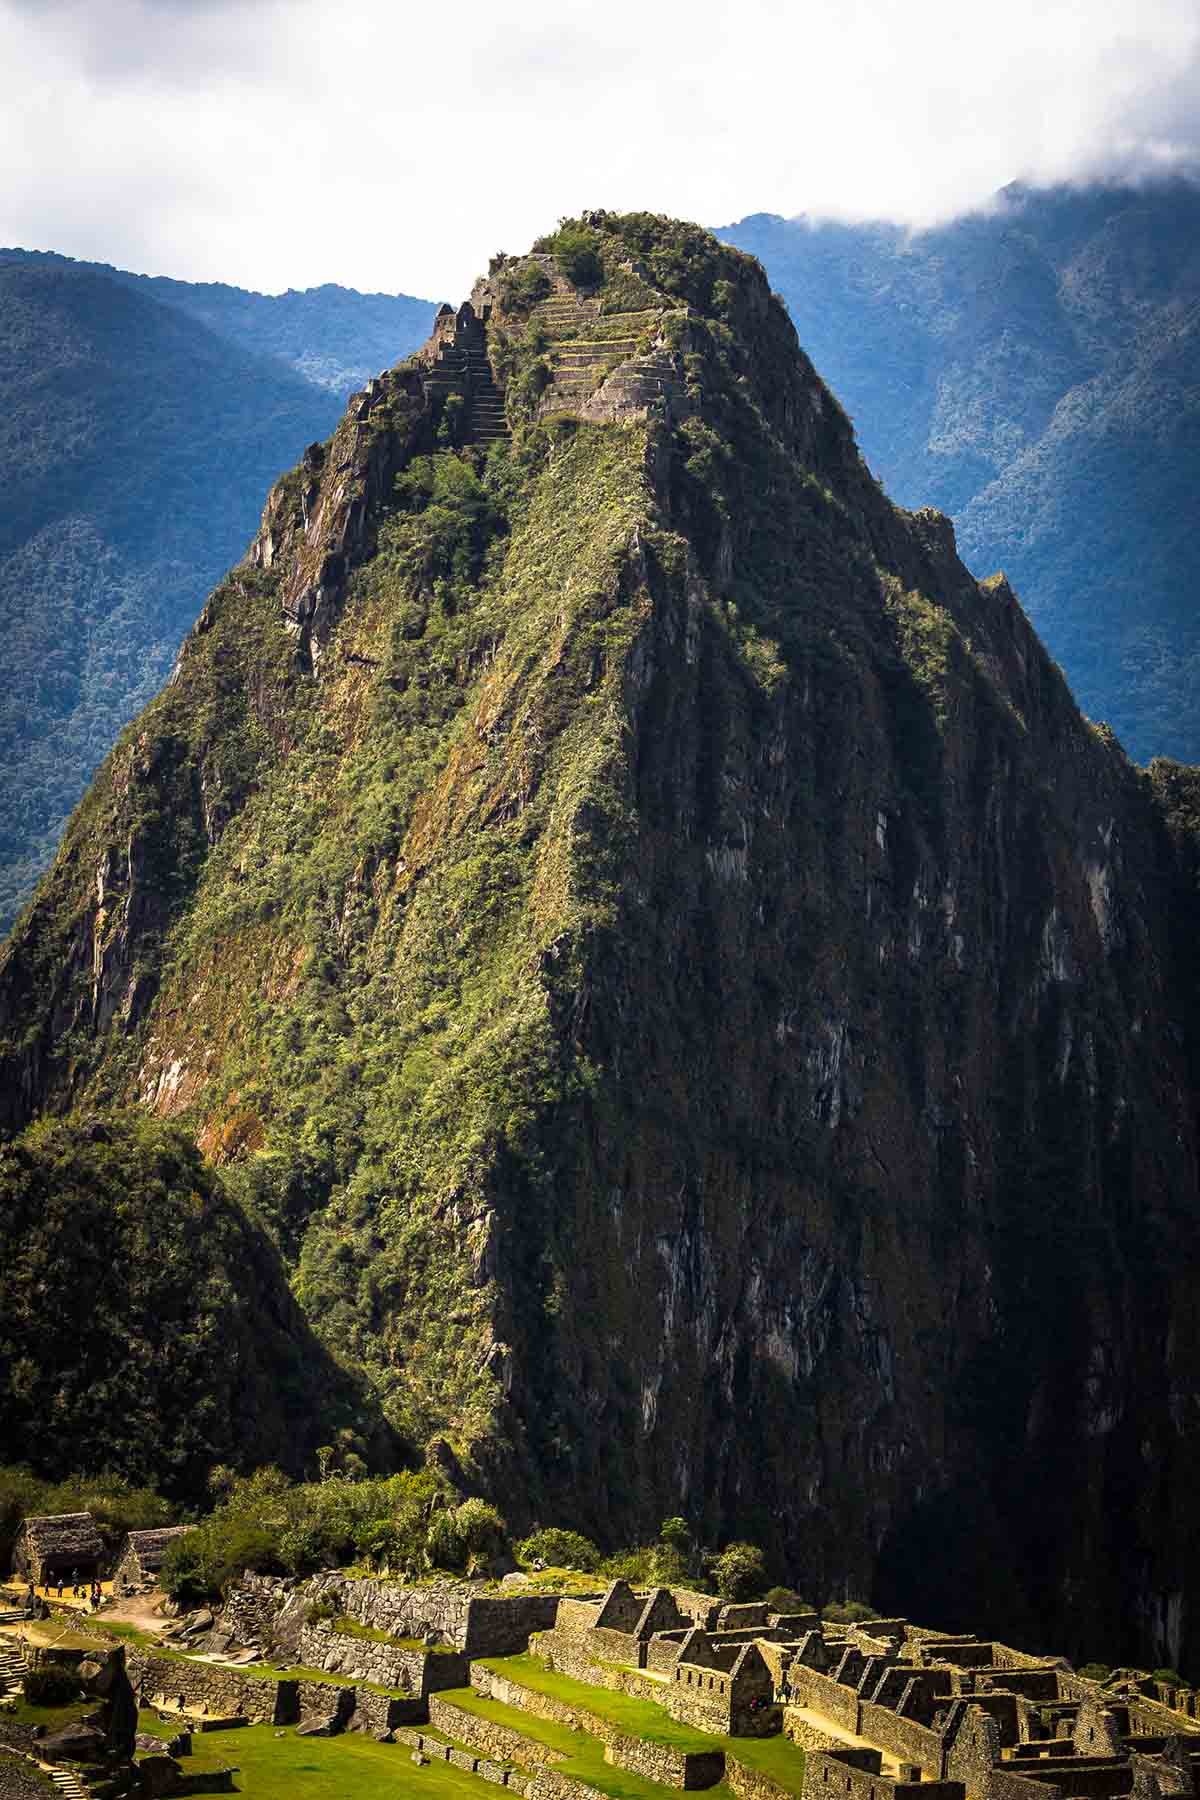 Huayna Picchu looms over the Machu Picchu ruins with the Moon Temple visible at the top.